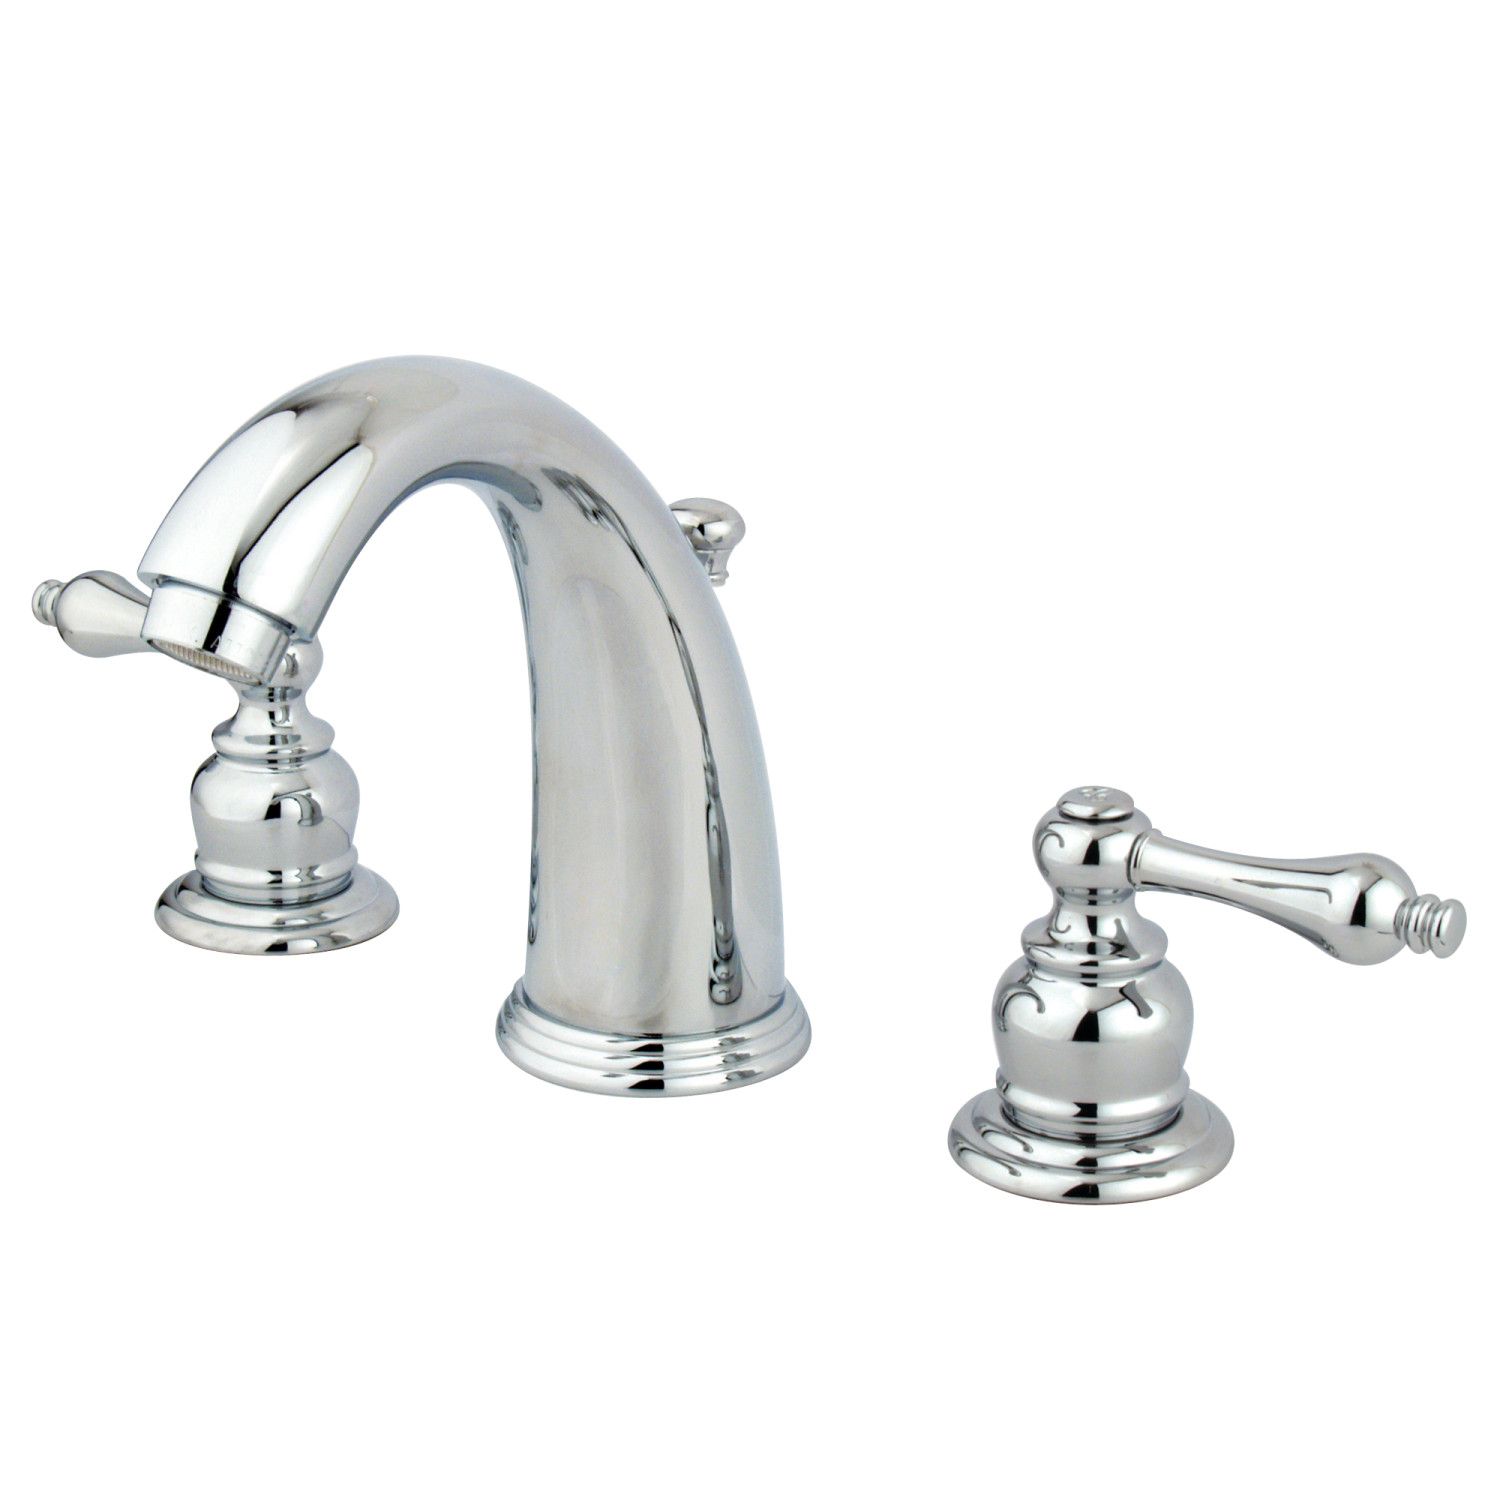 Traditional Two-Handle 3-Hole Deck Mounted Widespread Bathroom Faucet in Polished Chrome